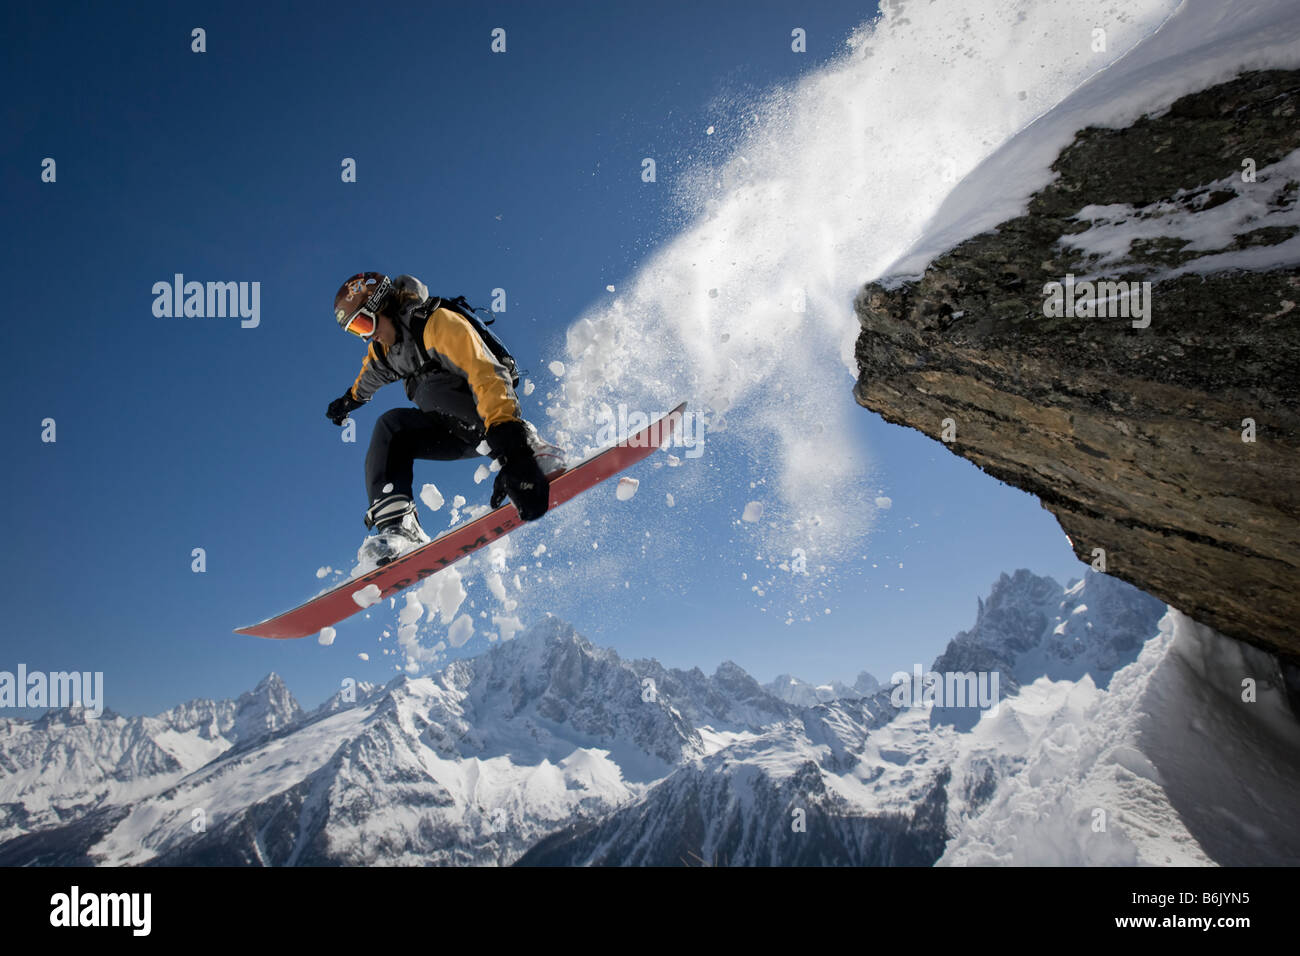 A snowboarder jumps off a rock at Le Brevent, Chamonix, France. Stock Photo